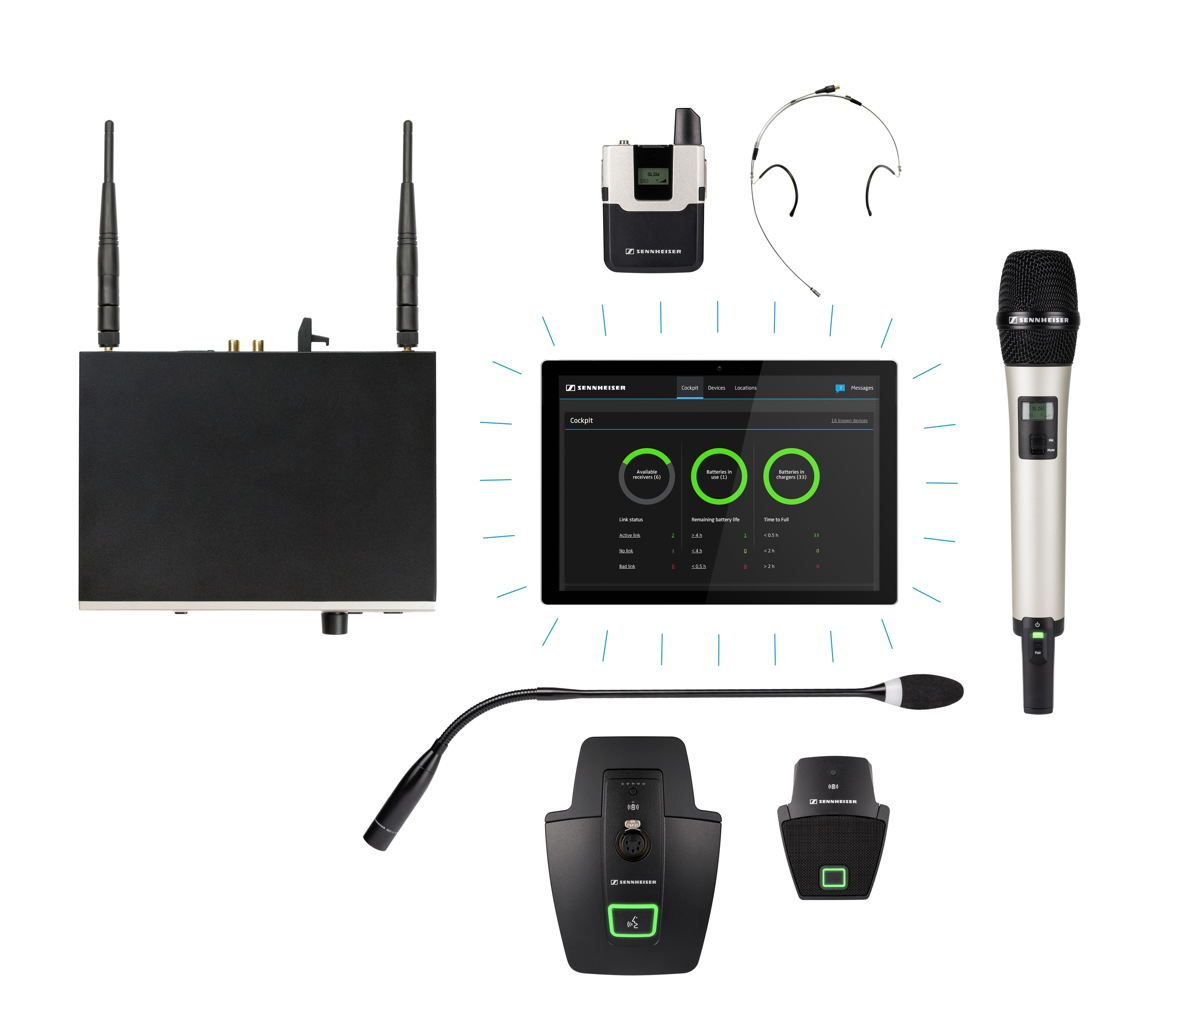 The Sennheiser SpeechLine Wireless Series provides specialist tools for speech applications